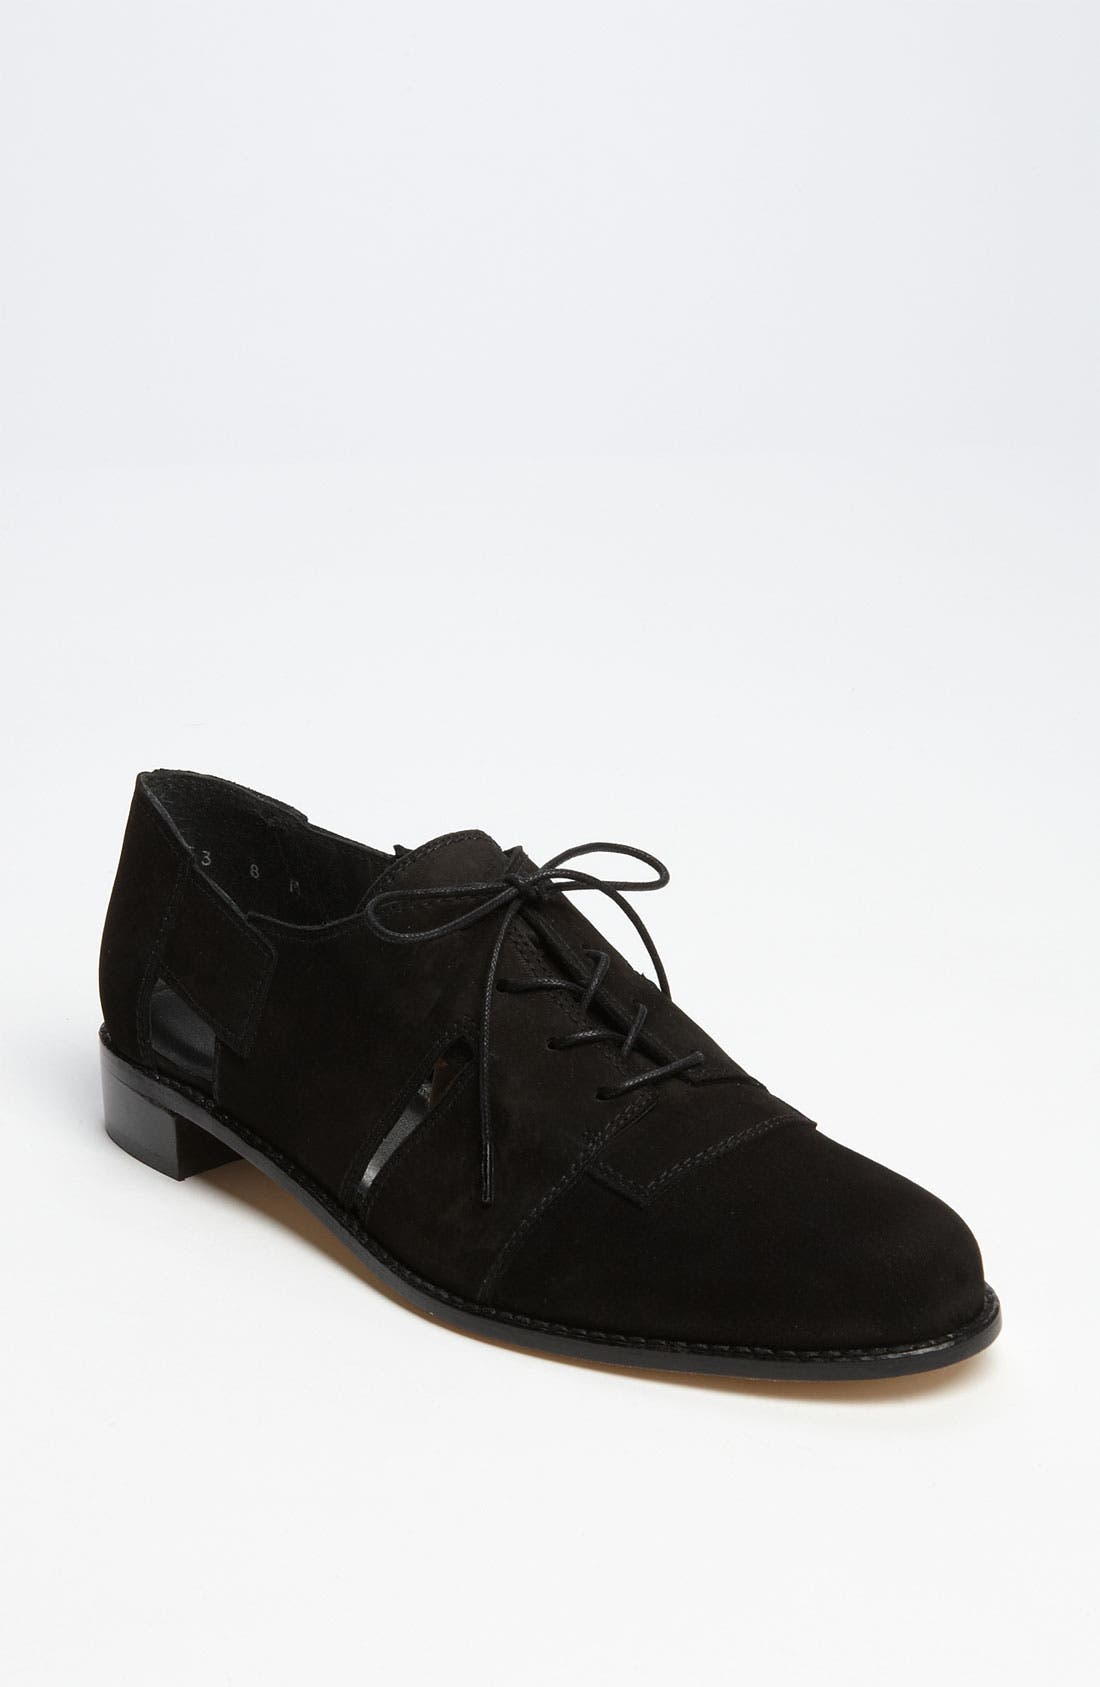 Alternate Image 1 Selected - Stuart Weitzman 'Manners' Oxford